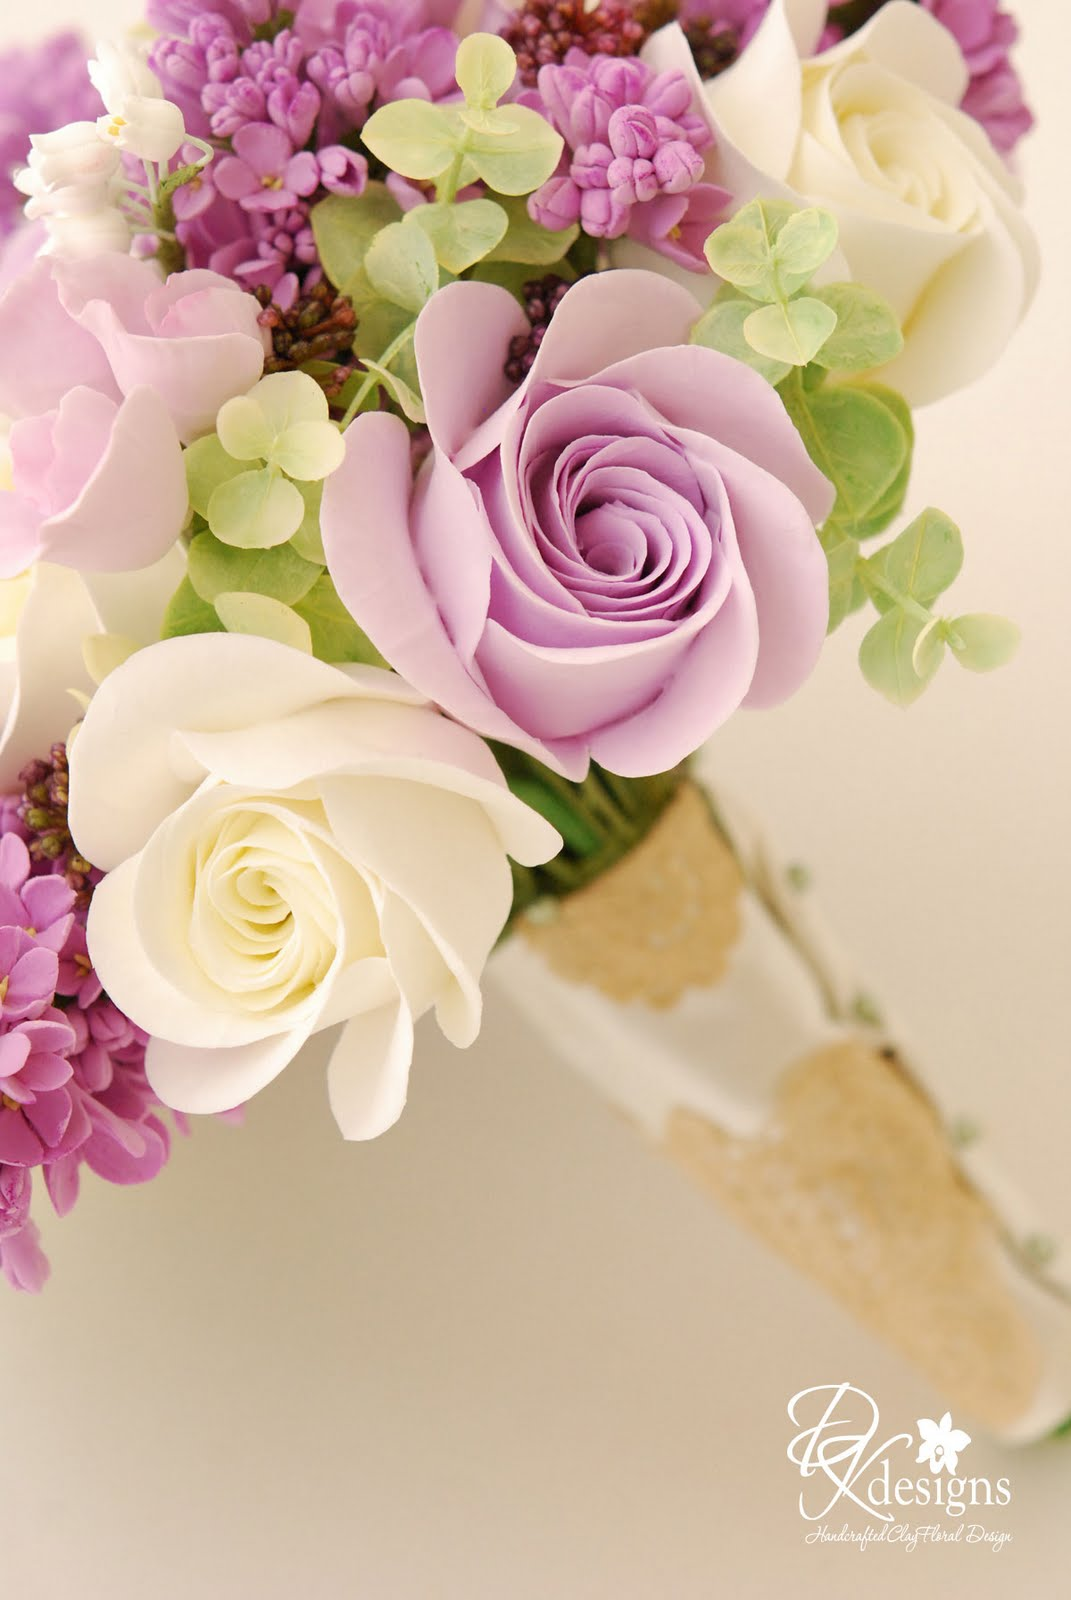 Amazing clay flower bouquet contemporary images for wedding gown dk designs my new favorite bouquet izmirmasajfo Images